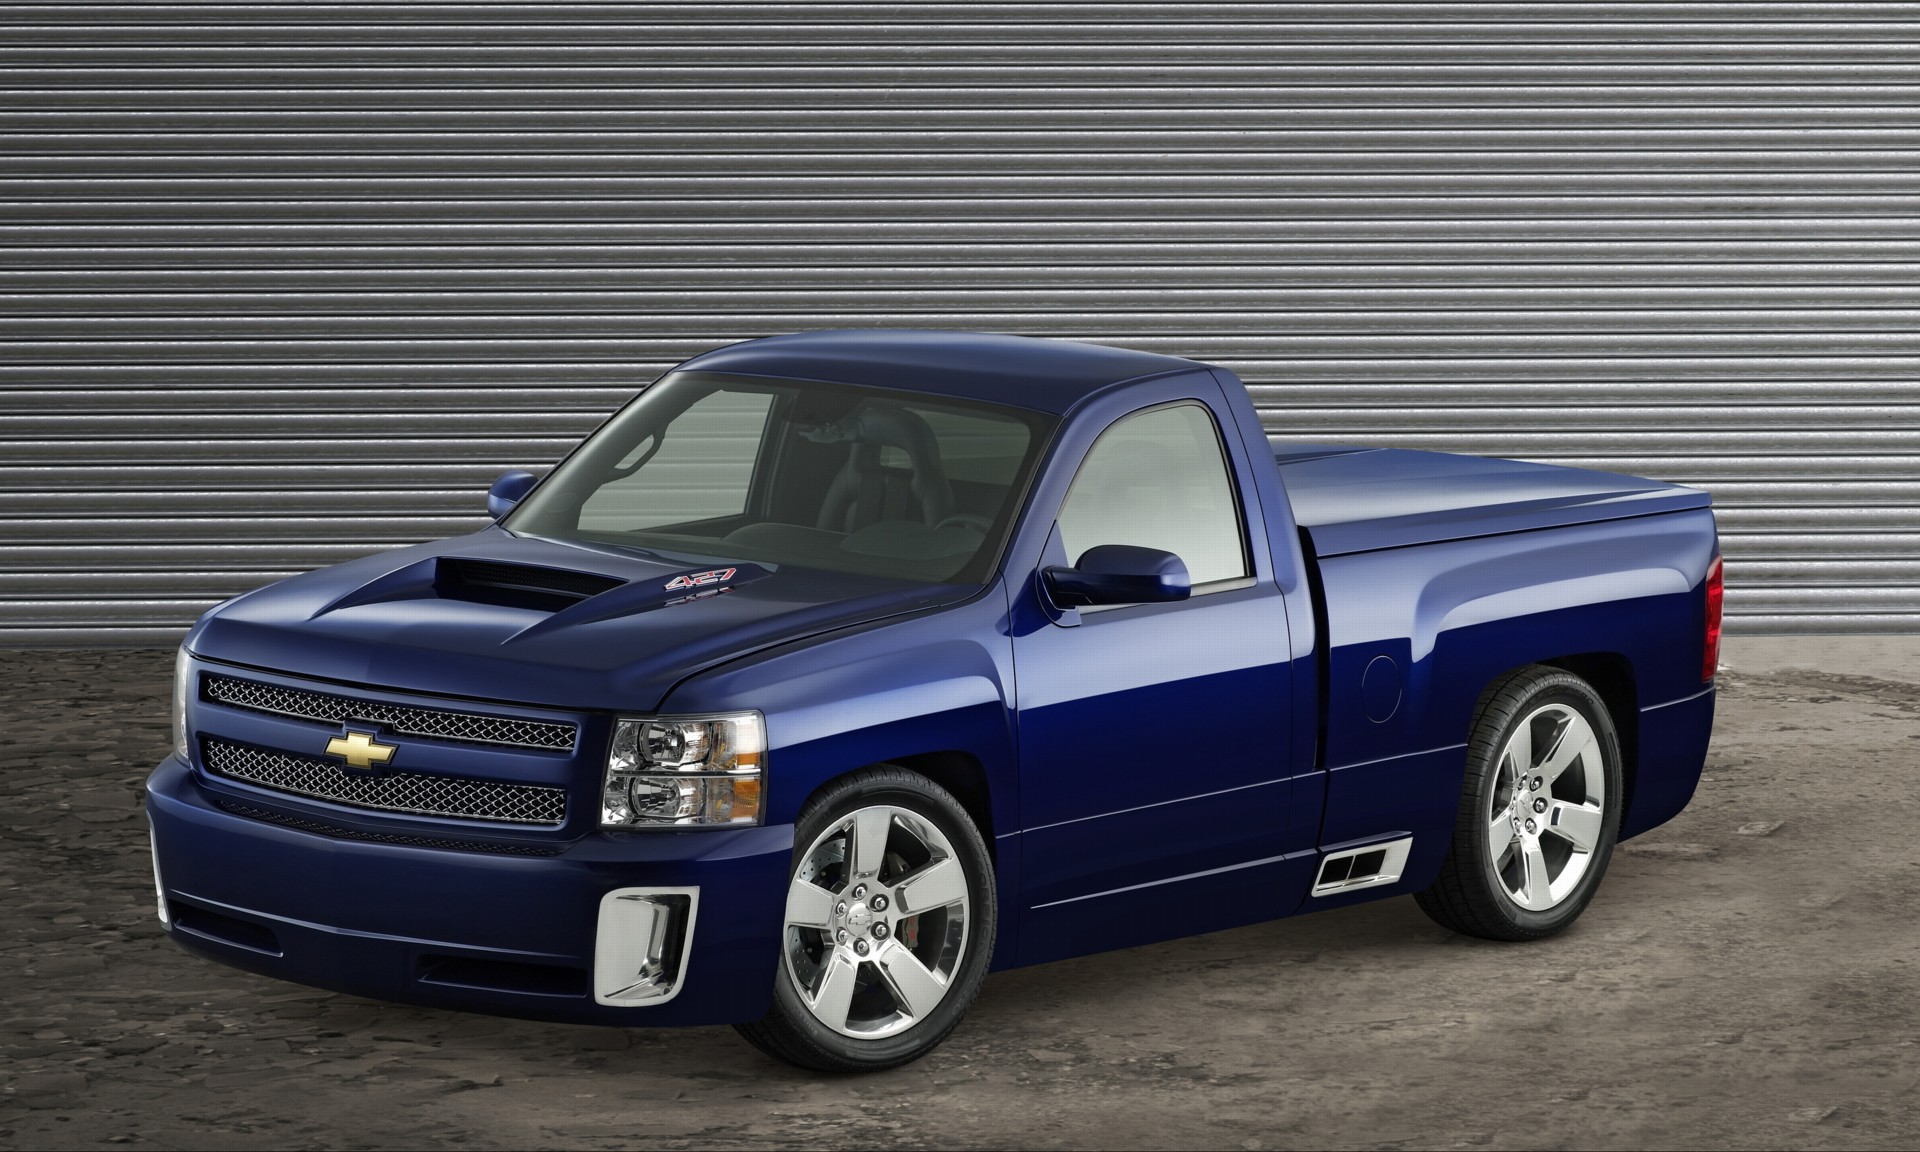 2015 Chevy Silverado Rally Edition Specs >> 2006 Chevrolet Silverado 427 Concept Pictures, History, Value, Research, News - conceptcarz.com